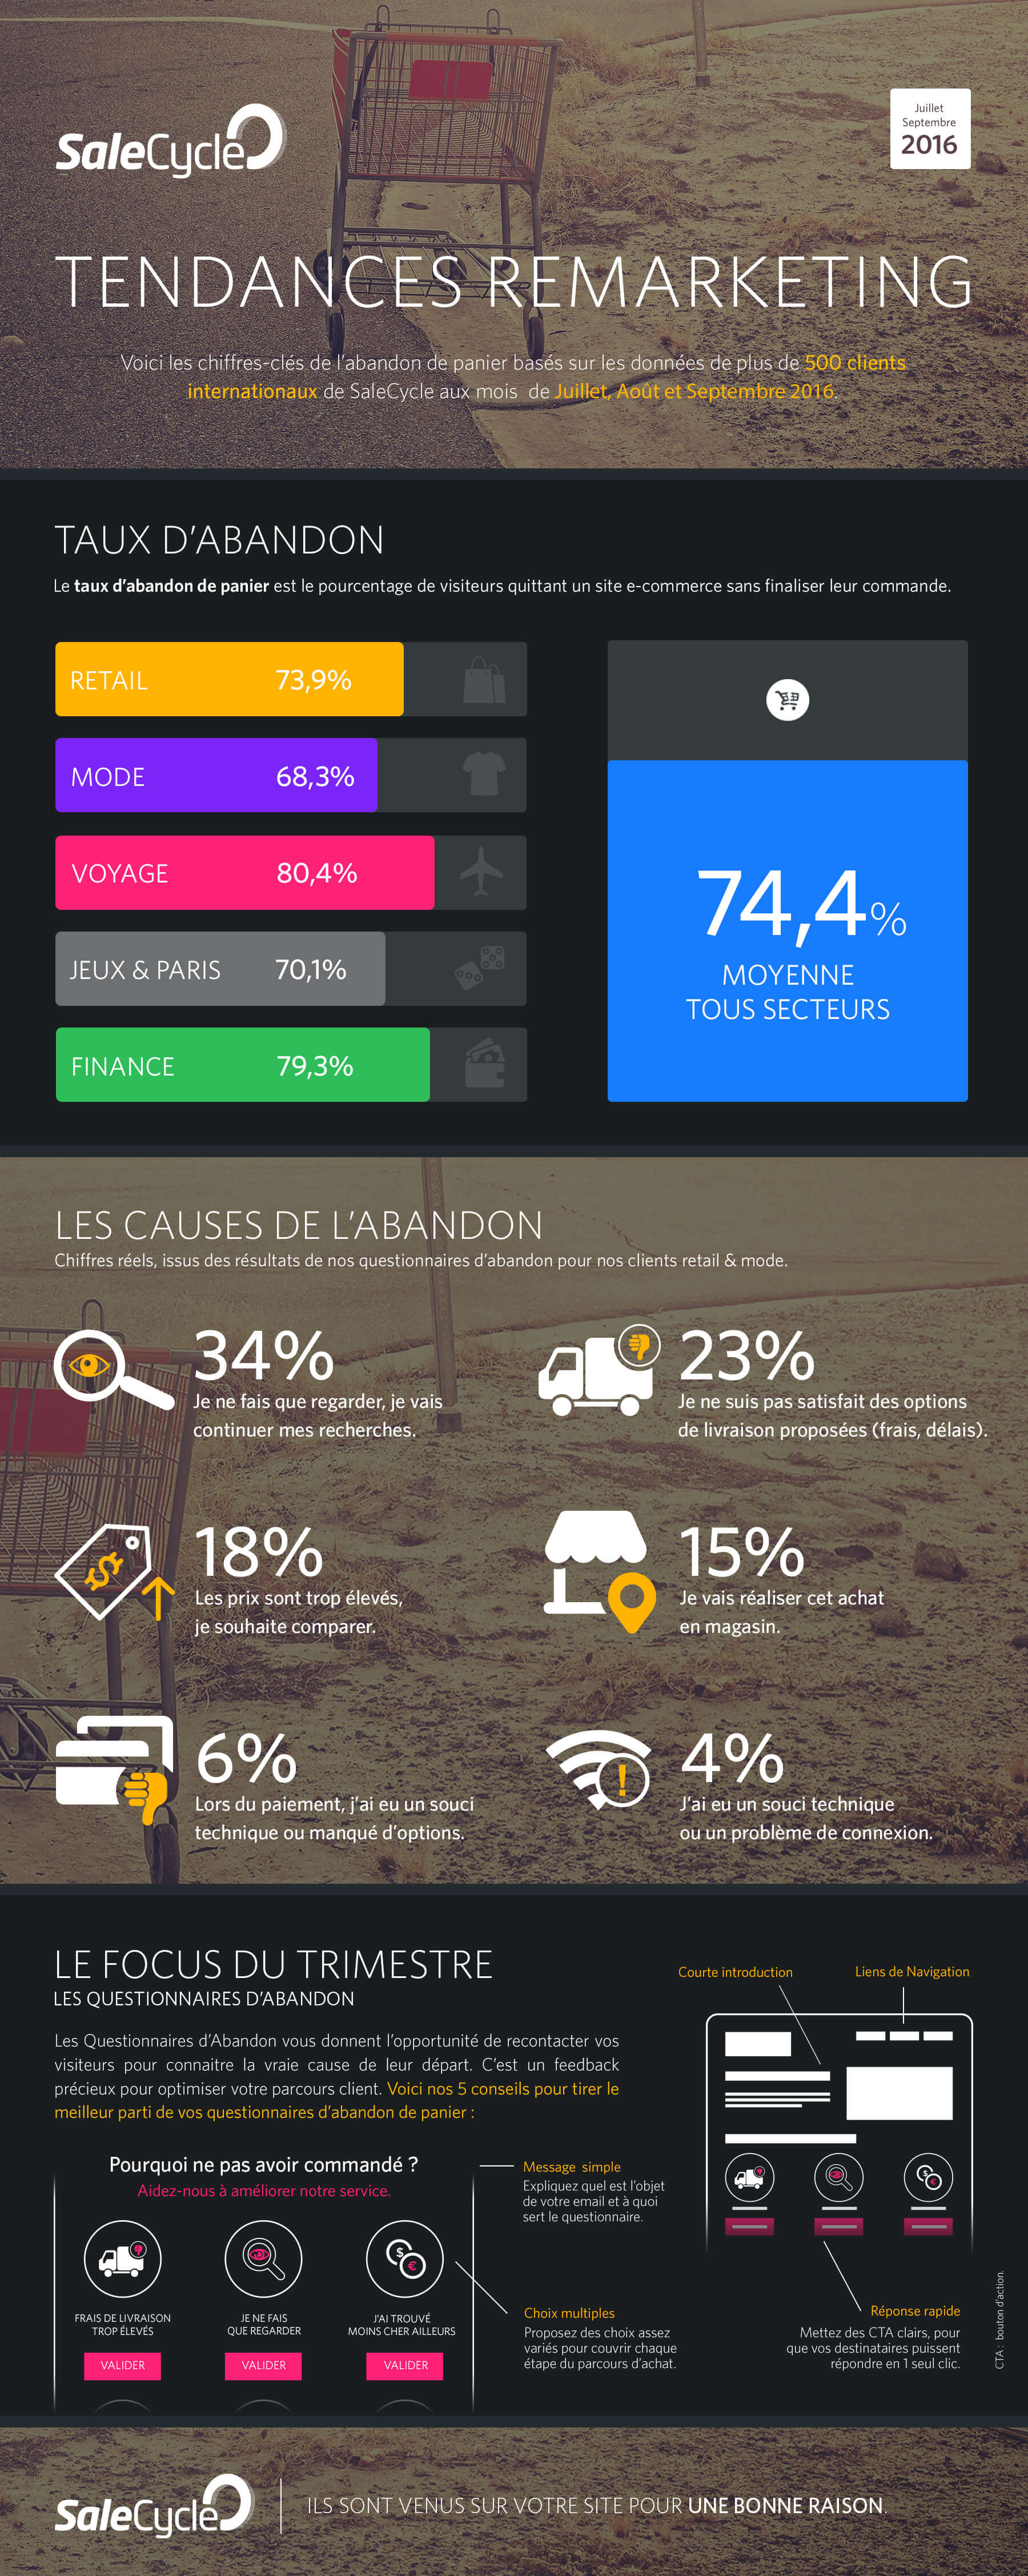 Infographie Tendances Remarketing Q3 2016